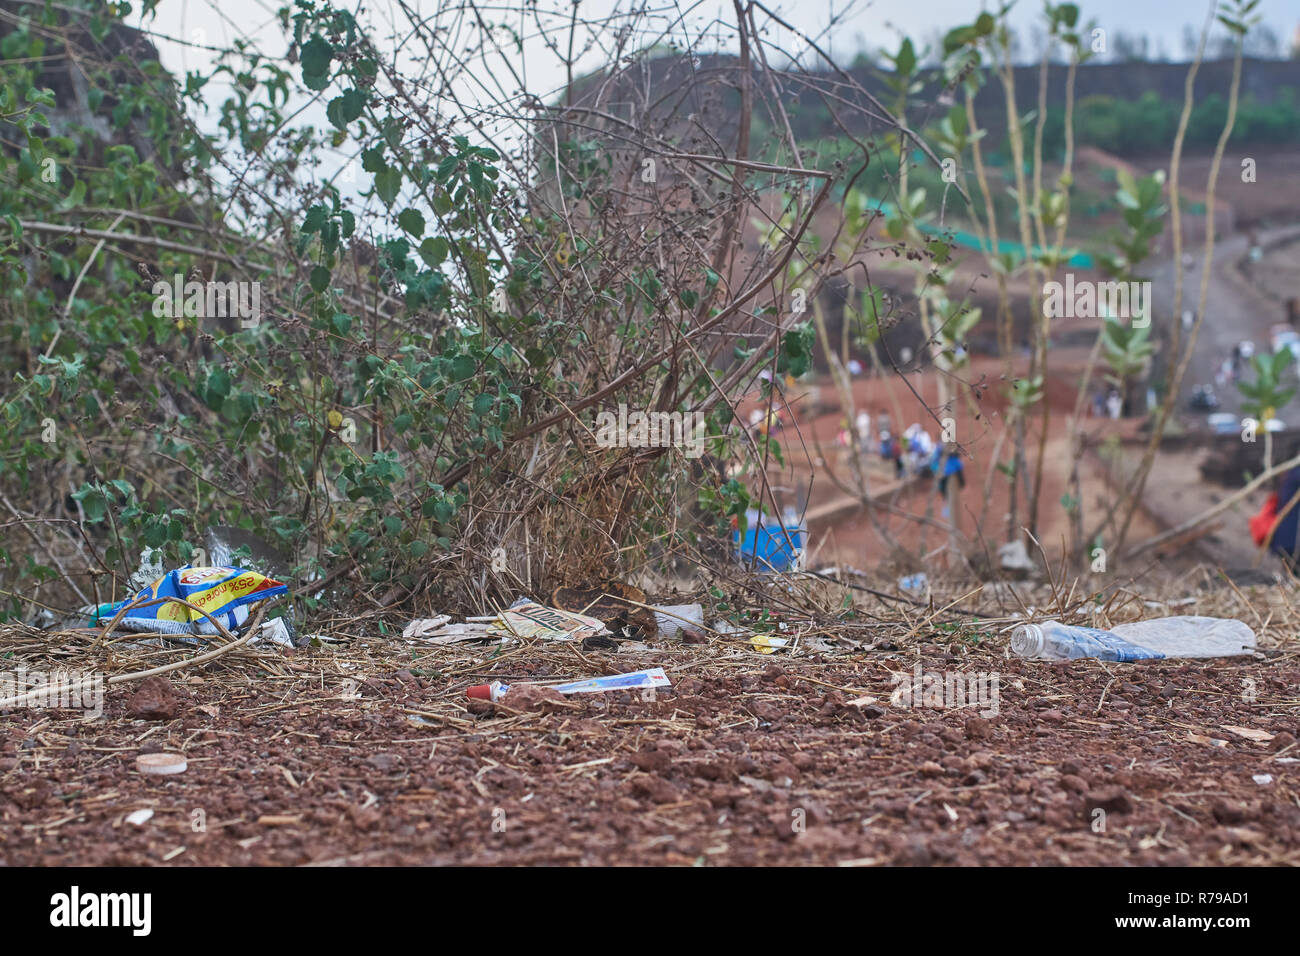 Garbage in some bushes. Stock Photo